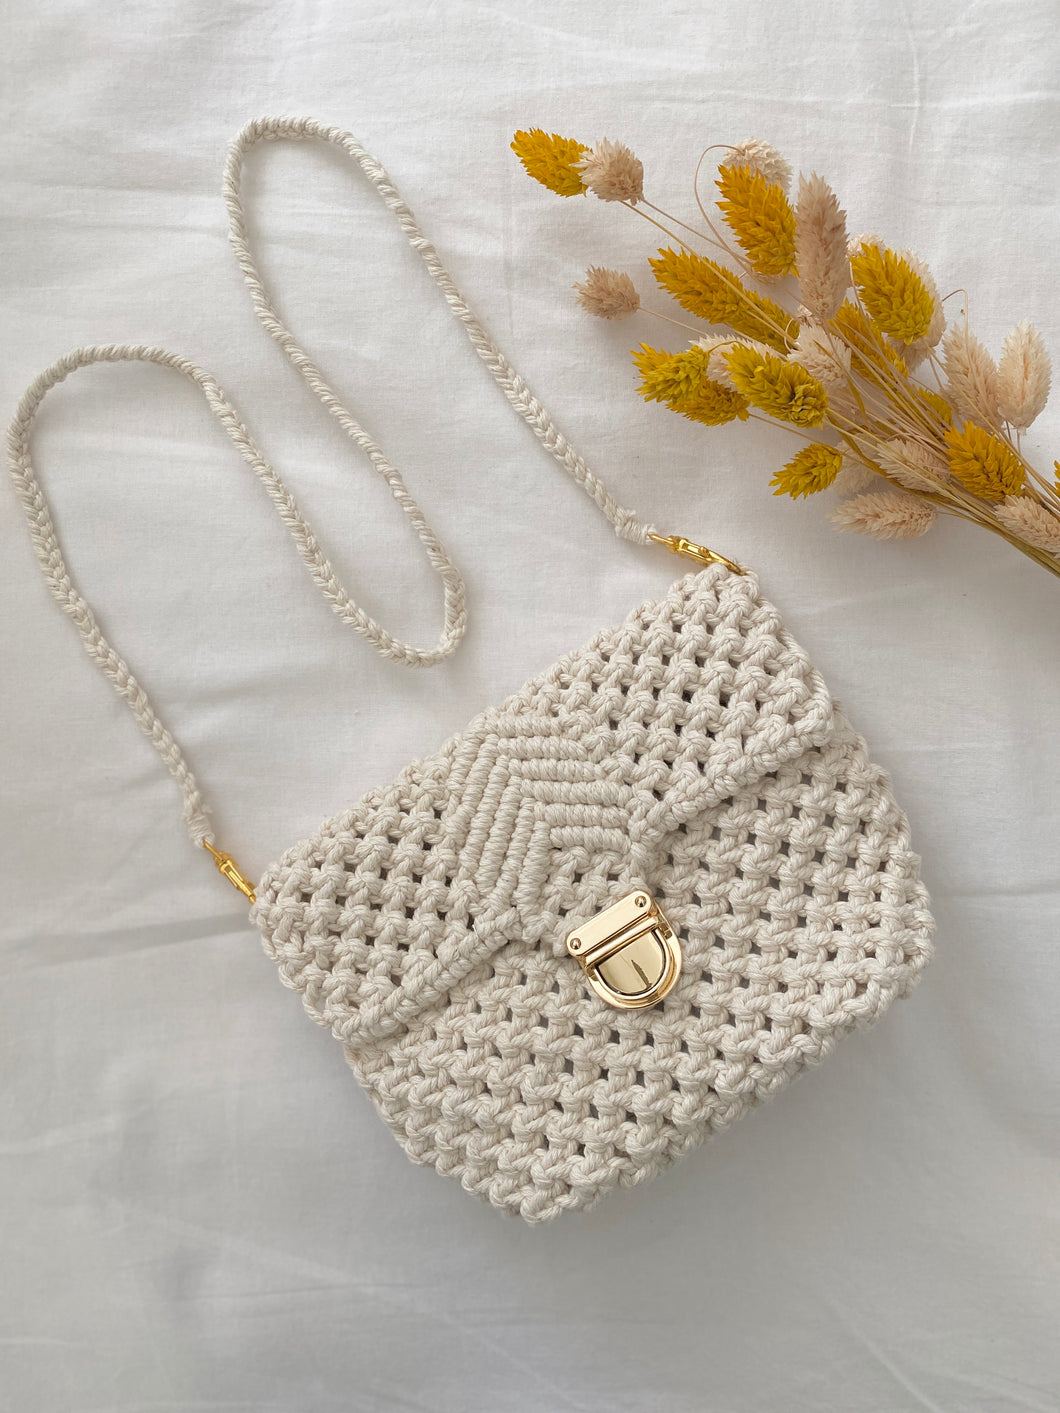 NOUVELLE COLLECTION : SAC EN MACRAMÉ ( EN OR ) - Crafty Mcramé